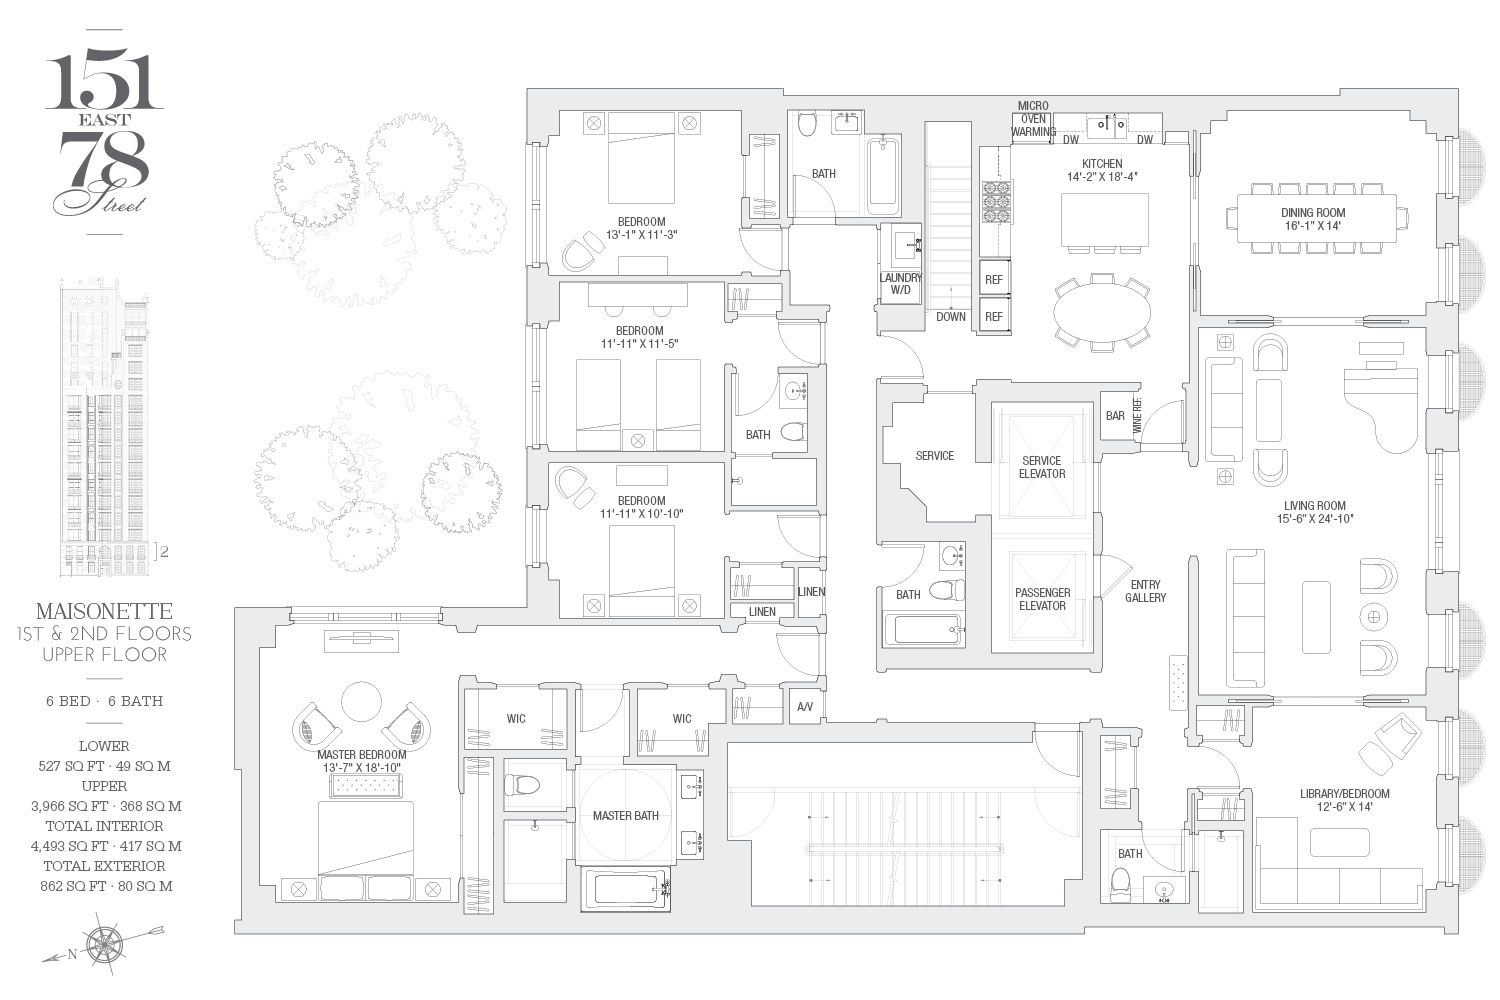 High Quality LOVE To Blow Out A Wall And Make That Master Bedroom Even Larger. Great Plan